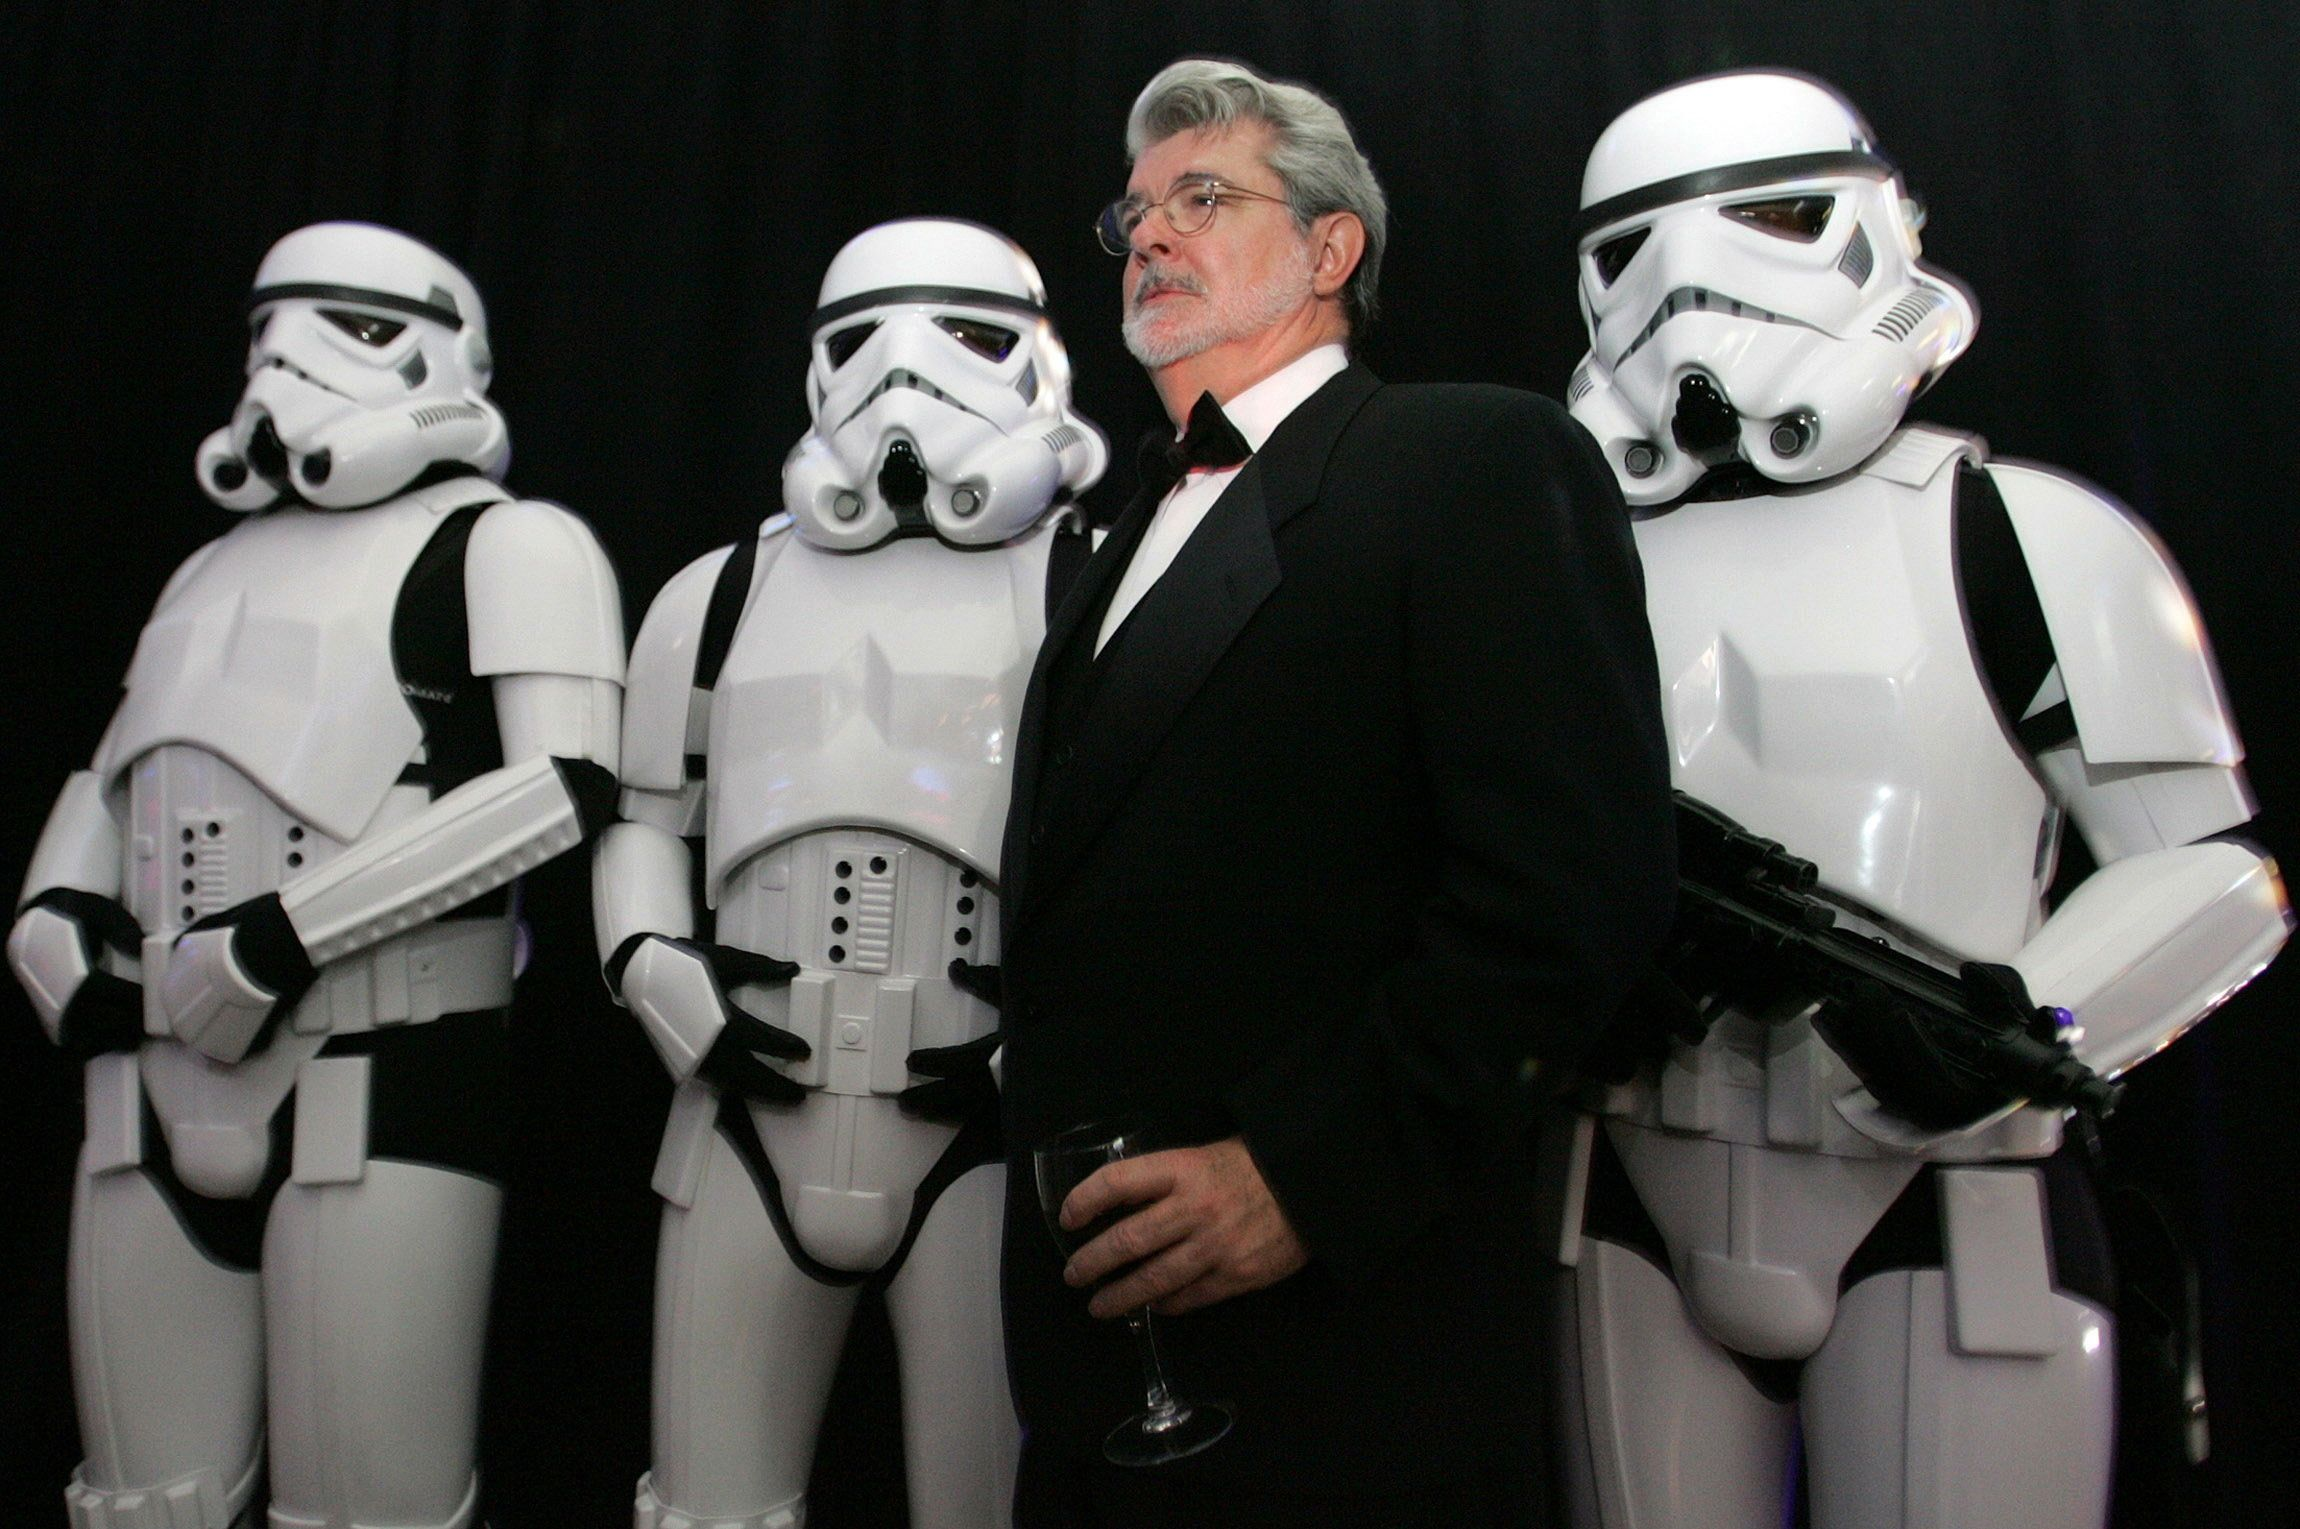 "Star Wars creator George Lucas (2nd-R) poses with Storm Troopers, characters in the Star Wars movies, during a gala held to celebrate the ""Star Wars: Where Science Meets the Imagination"" exhibition at the Museum of Science in Boston, Massachusetts October 22, 2005."